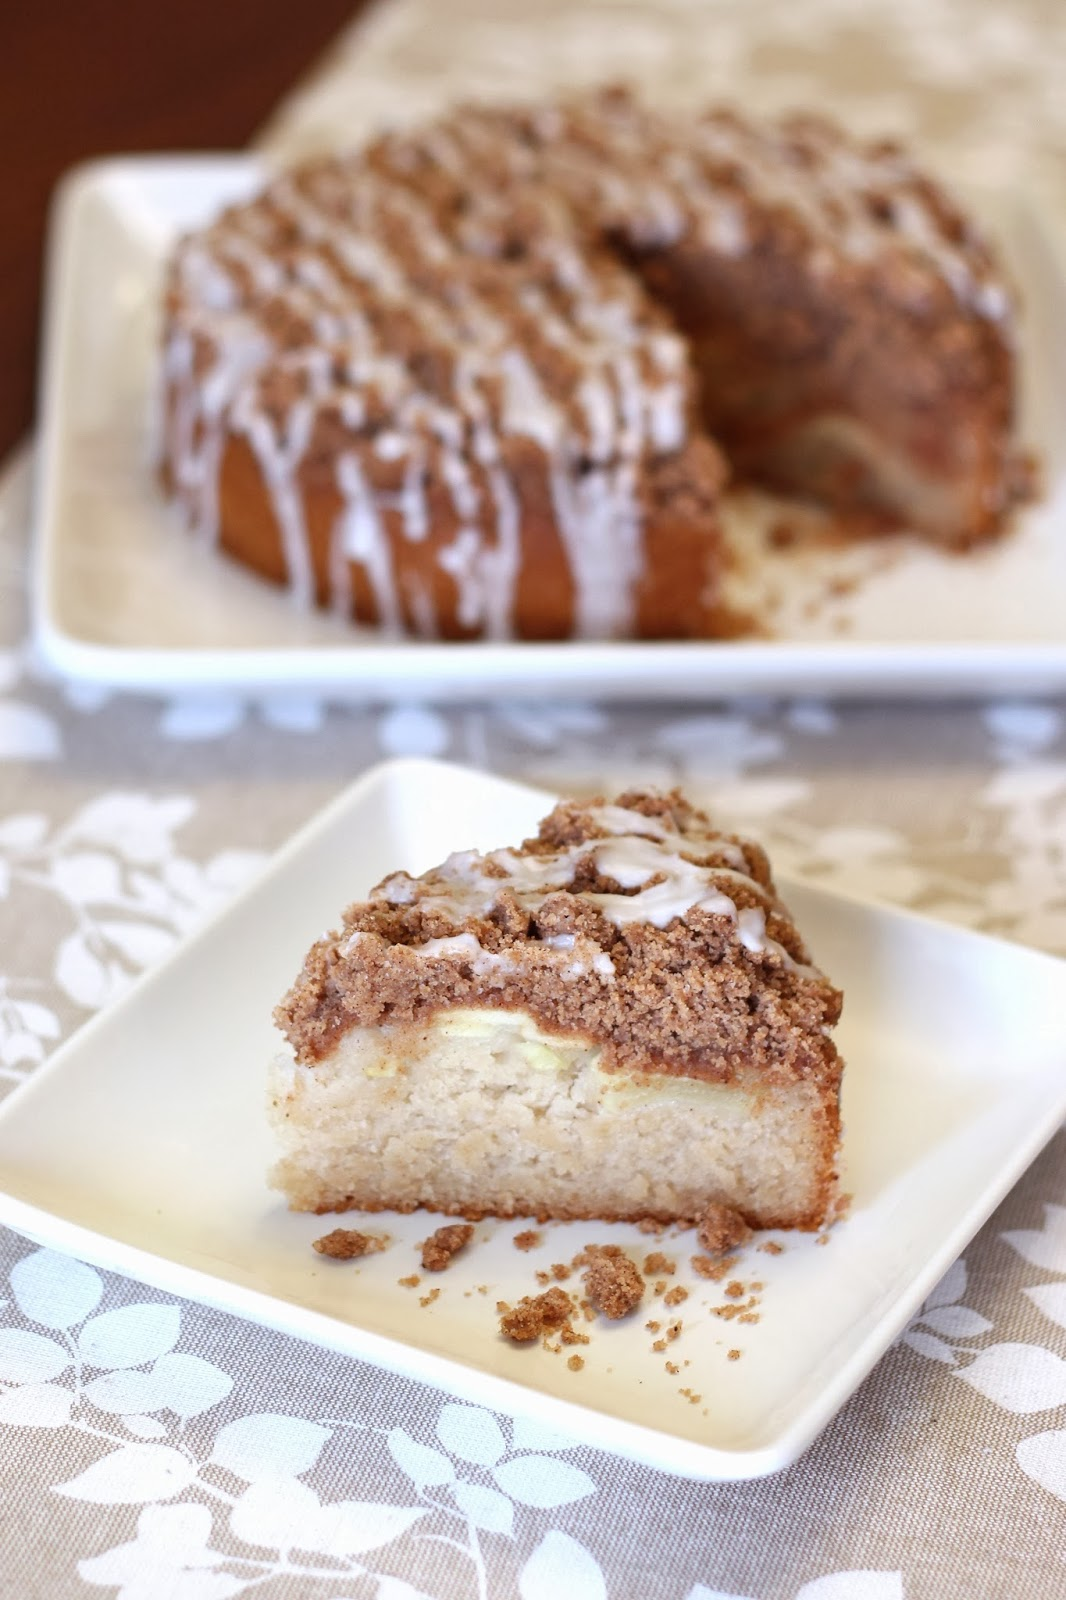 ... Bakes Gluten Free Treats: gluten free vegan apple cinnamon coffee cake